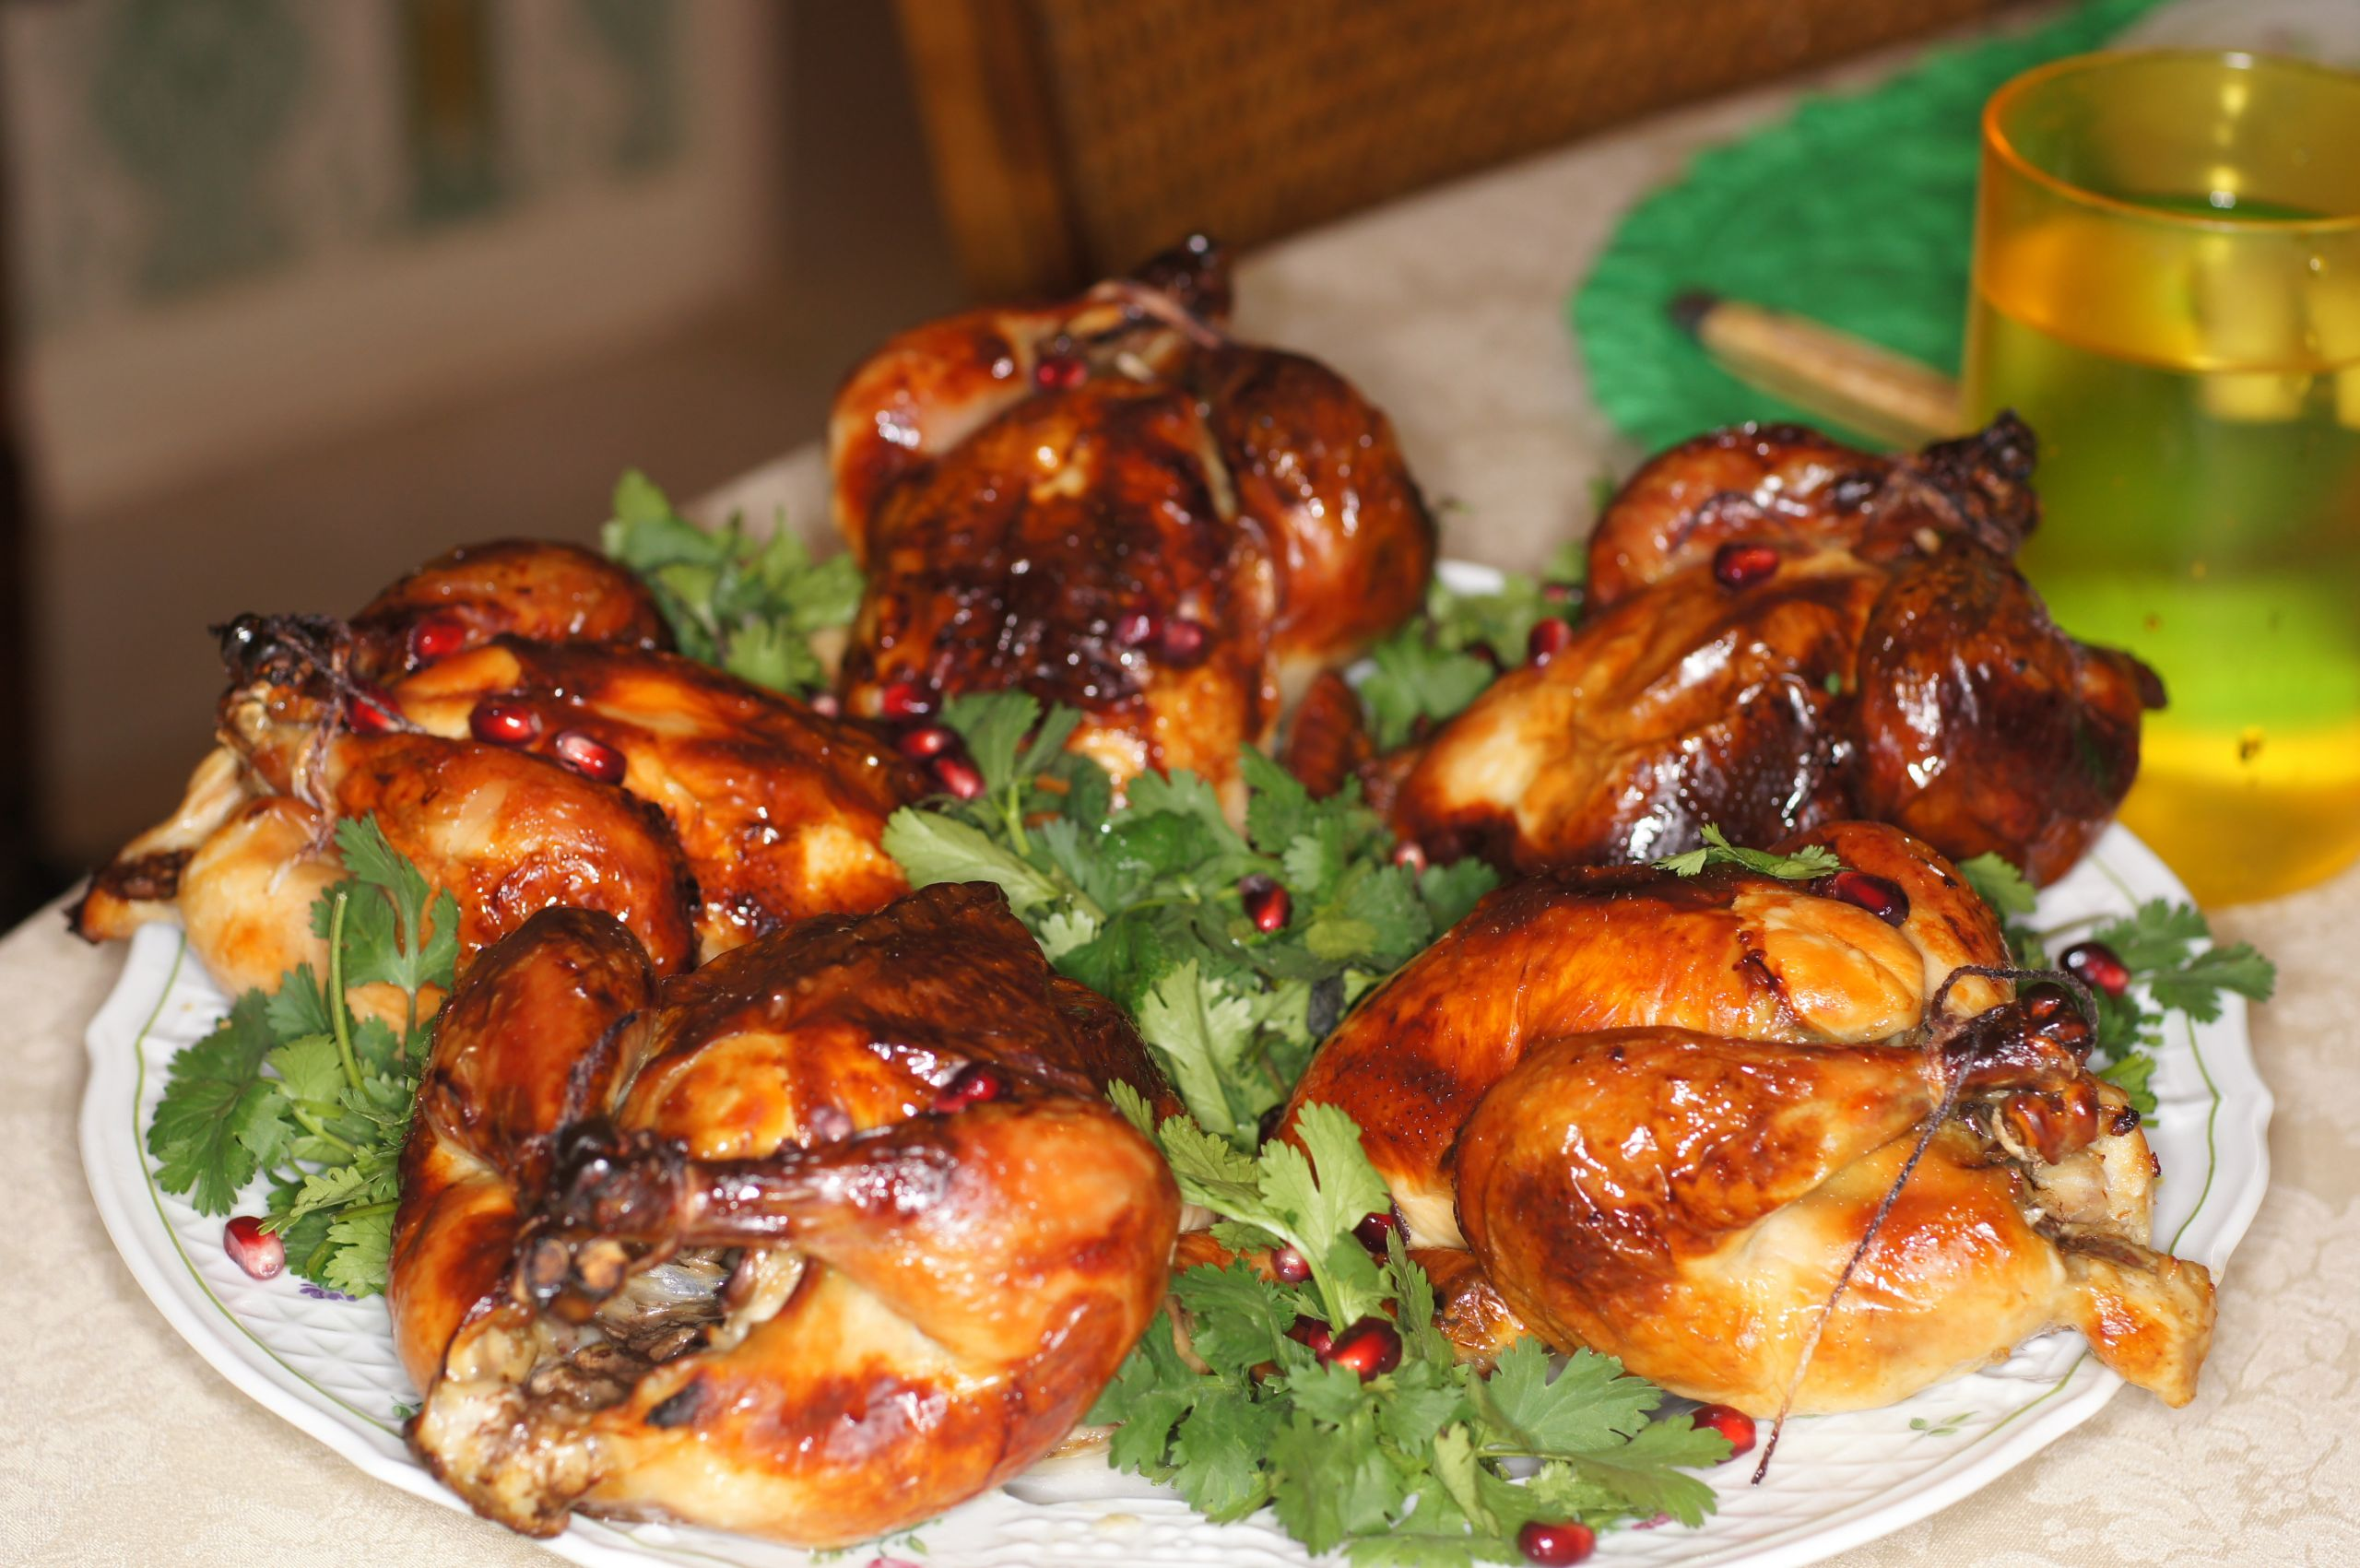 Cornish Game Hens Recipes  Roasted Brined Cornish Game Hens with Pomegranate Sauce